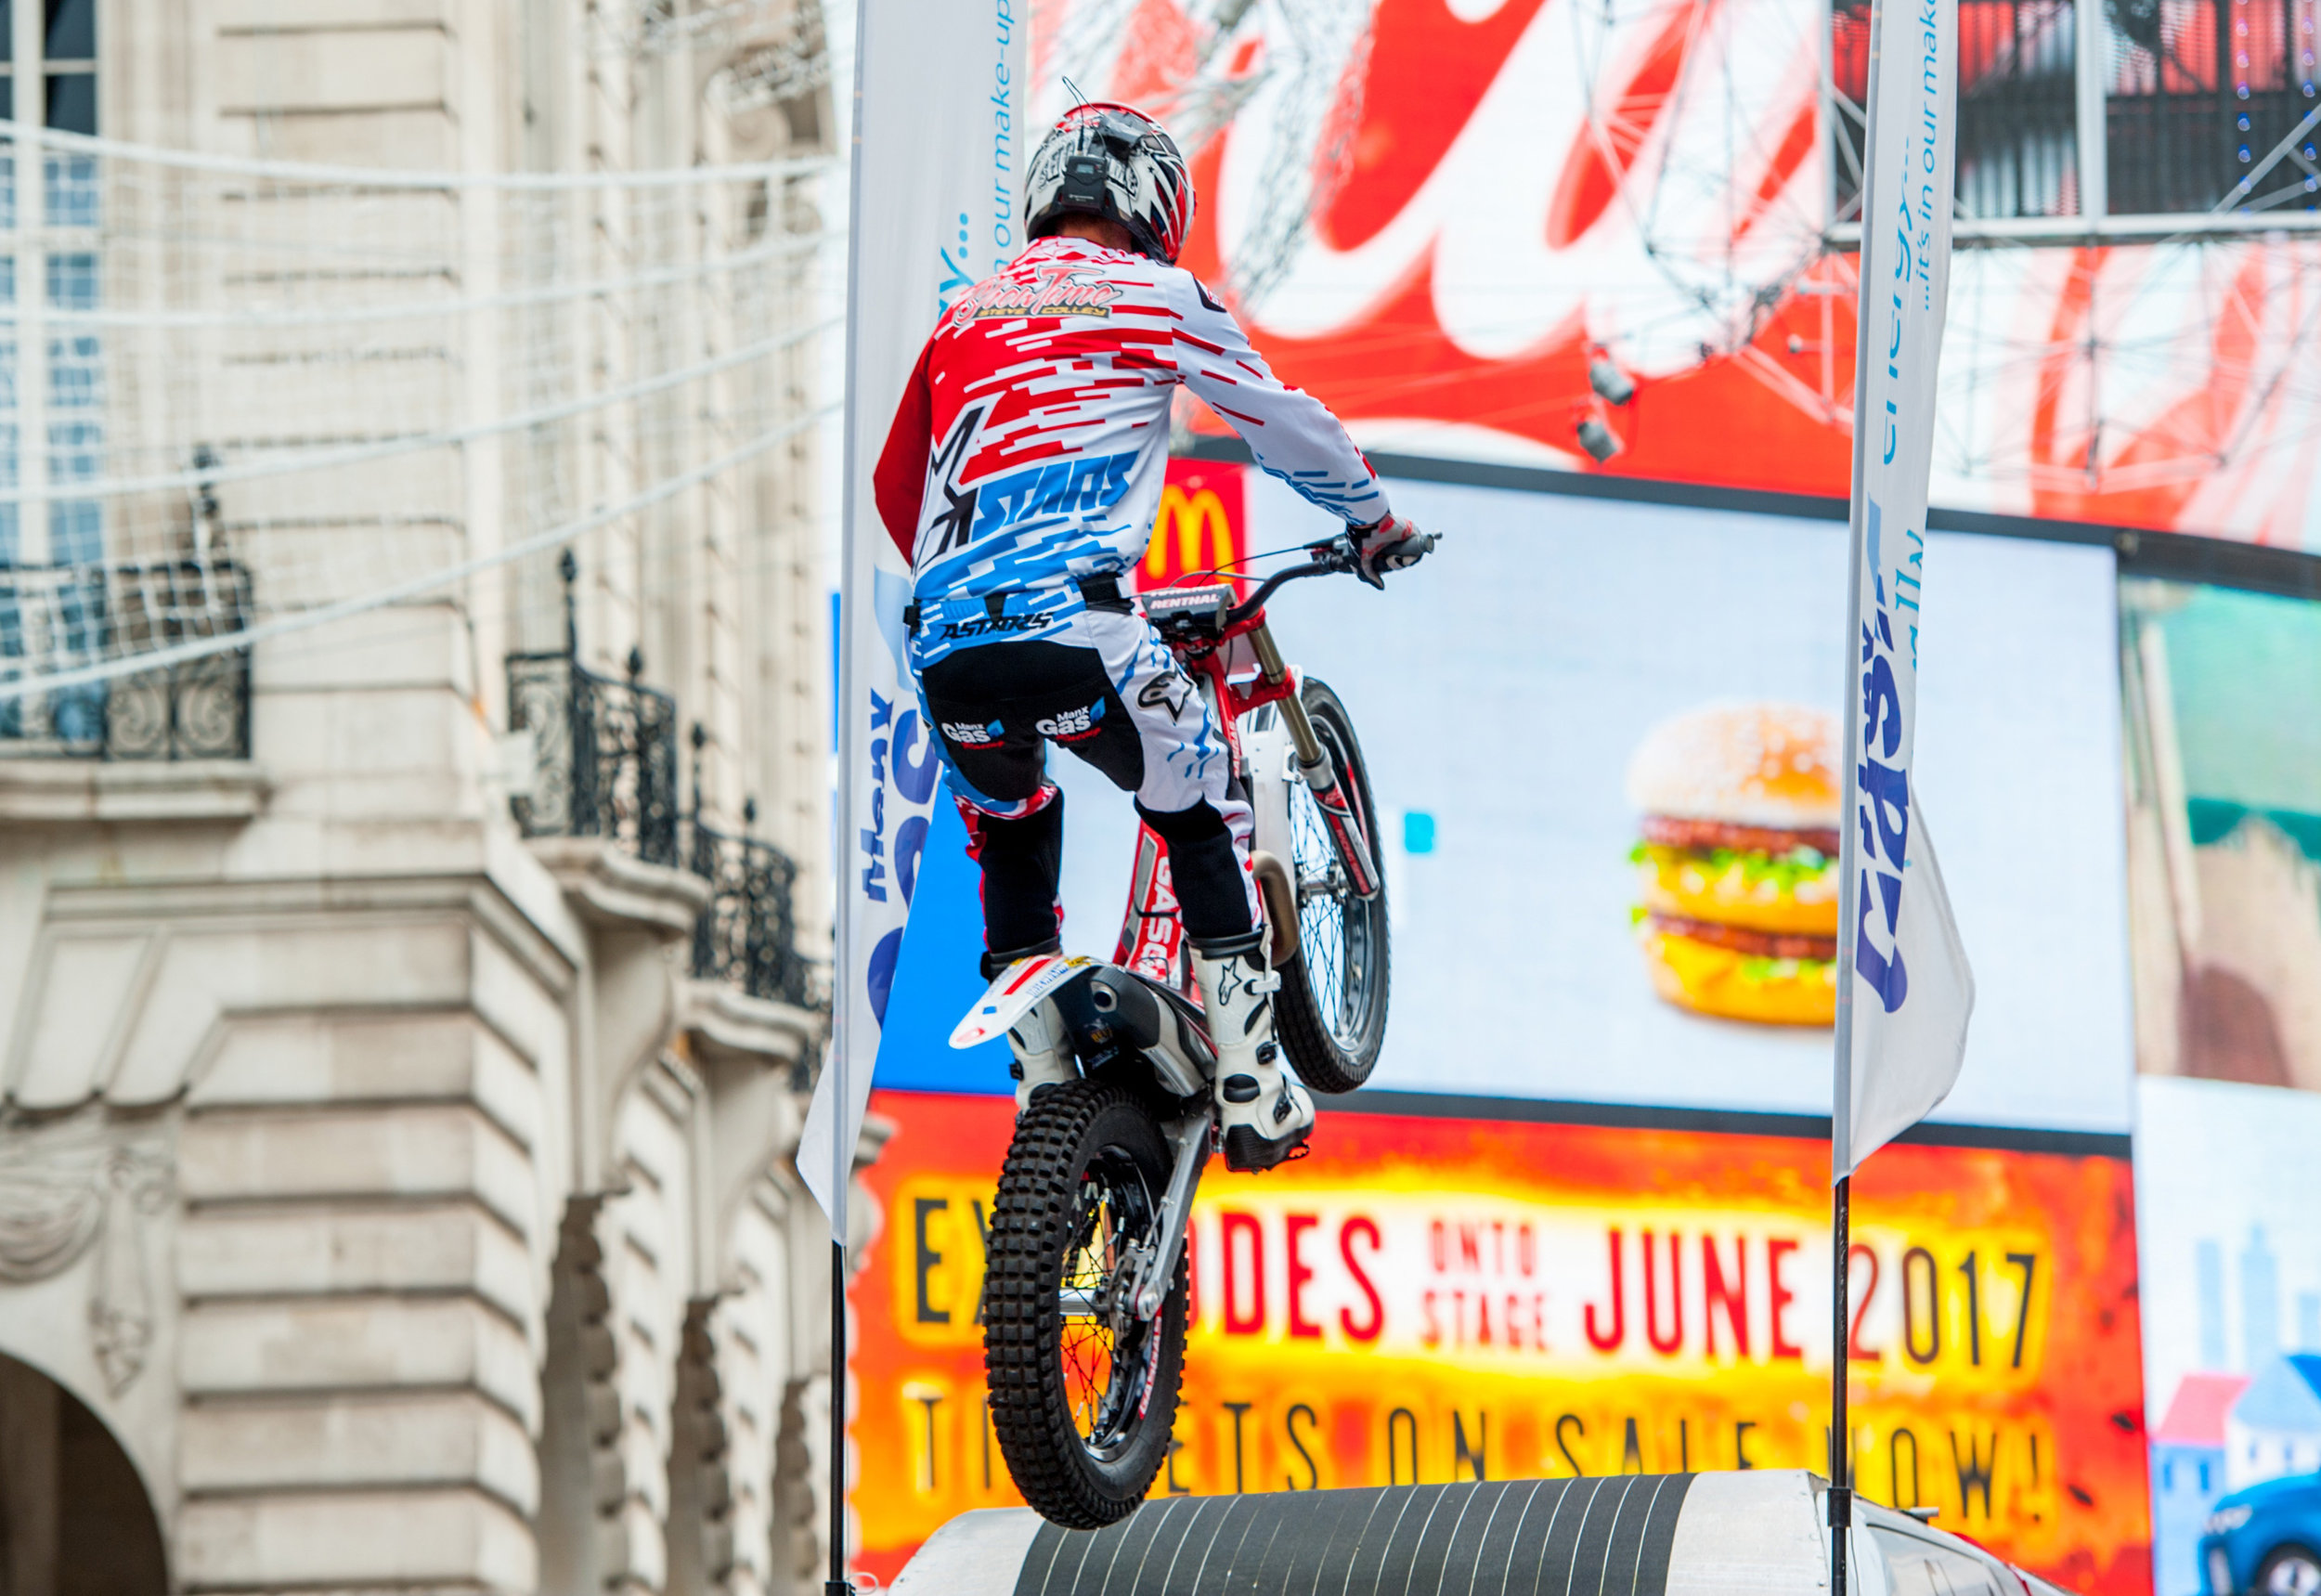 Bike-stunts-at-the-Regent-Street-Motor-Show.jpg